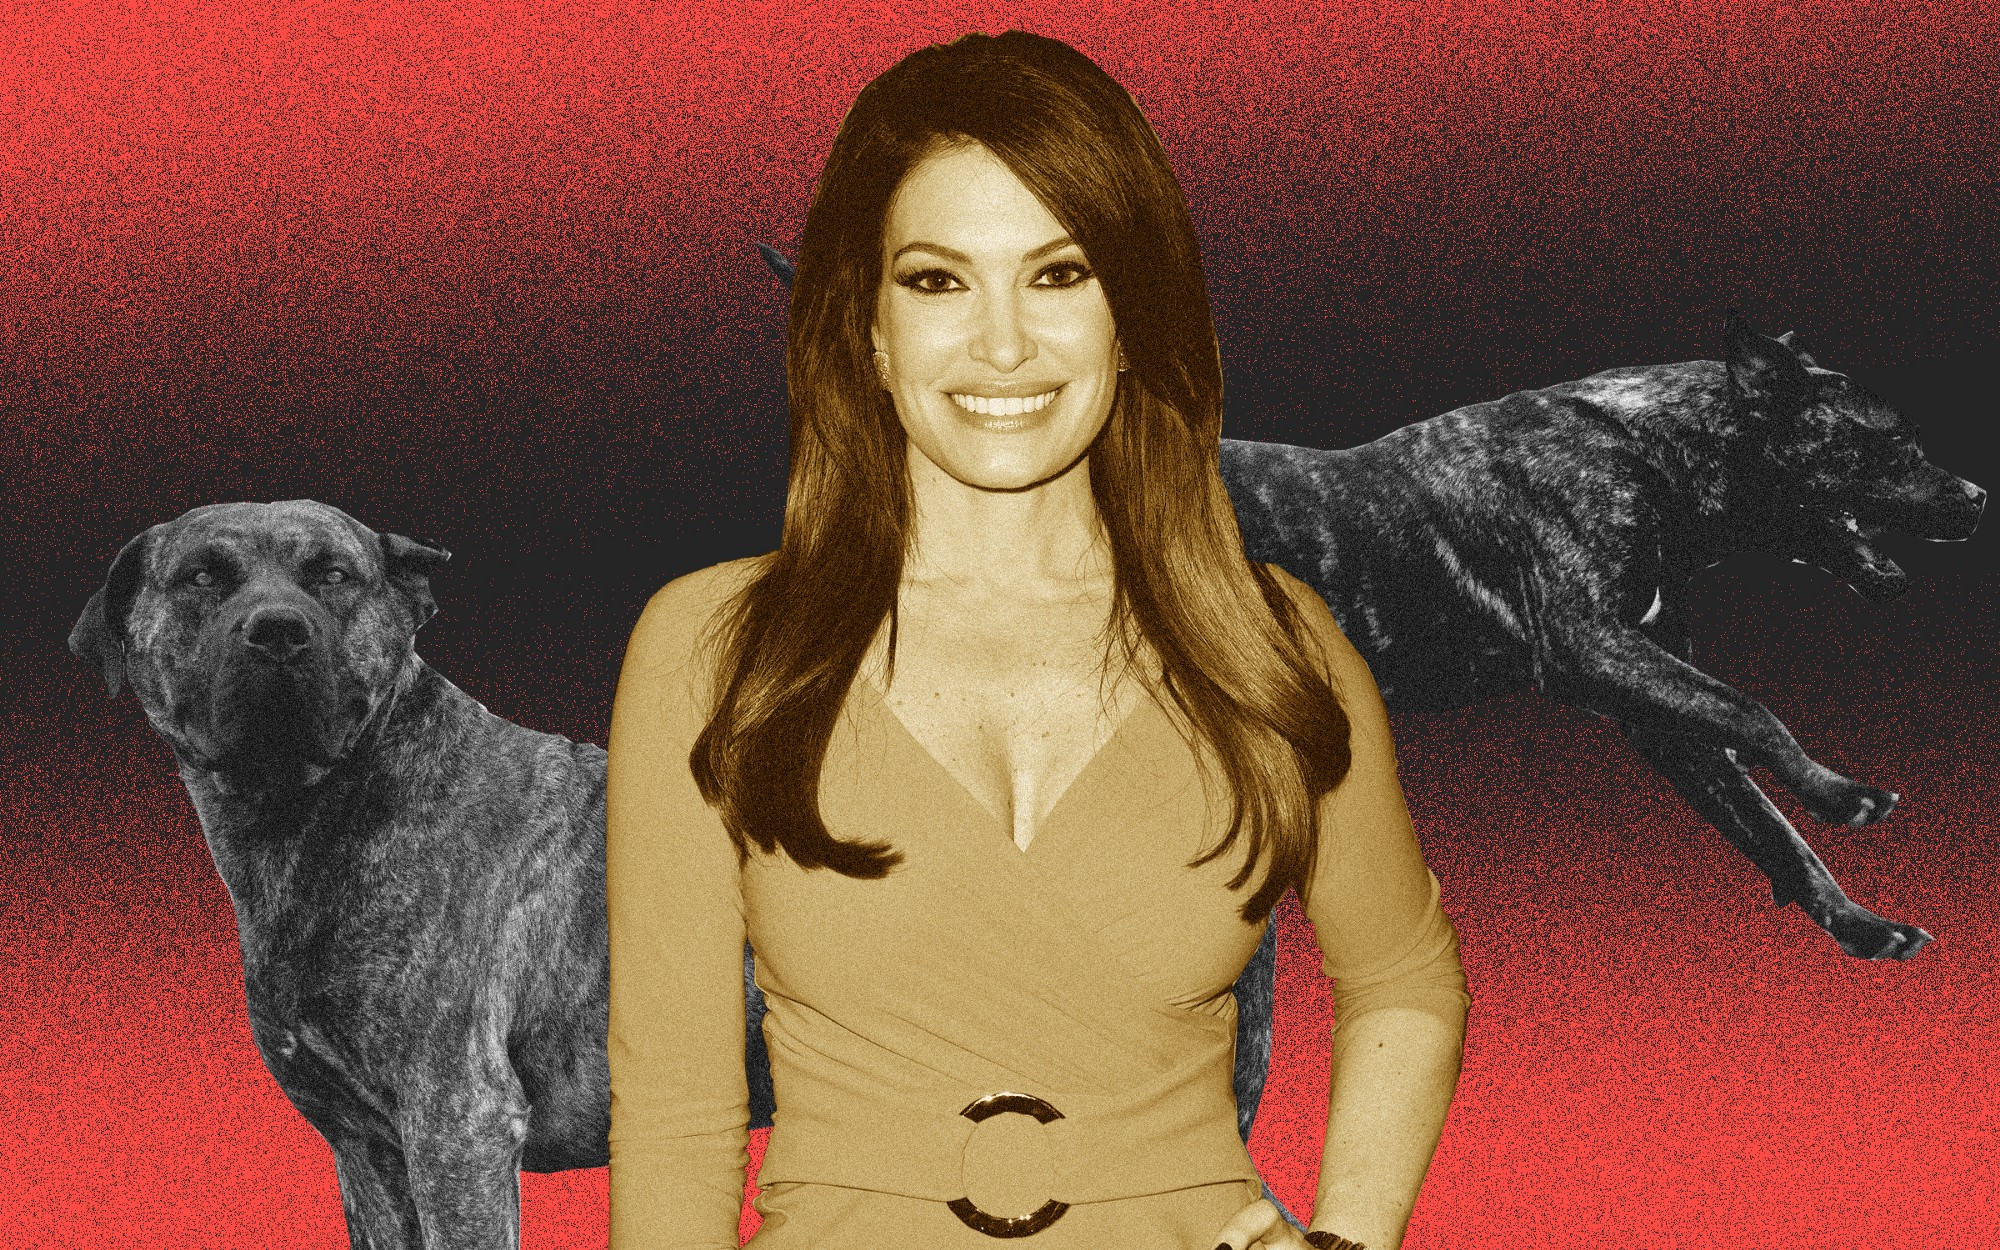 Kimberly Guilfoyle juxtaposed against a background of two Presa Canario dogs, a mastiff breed.